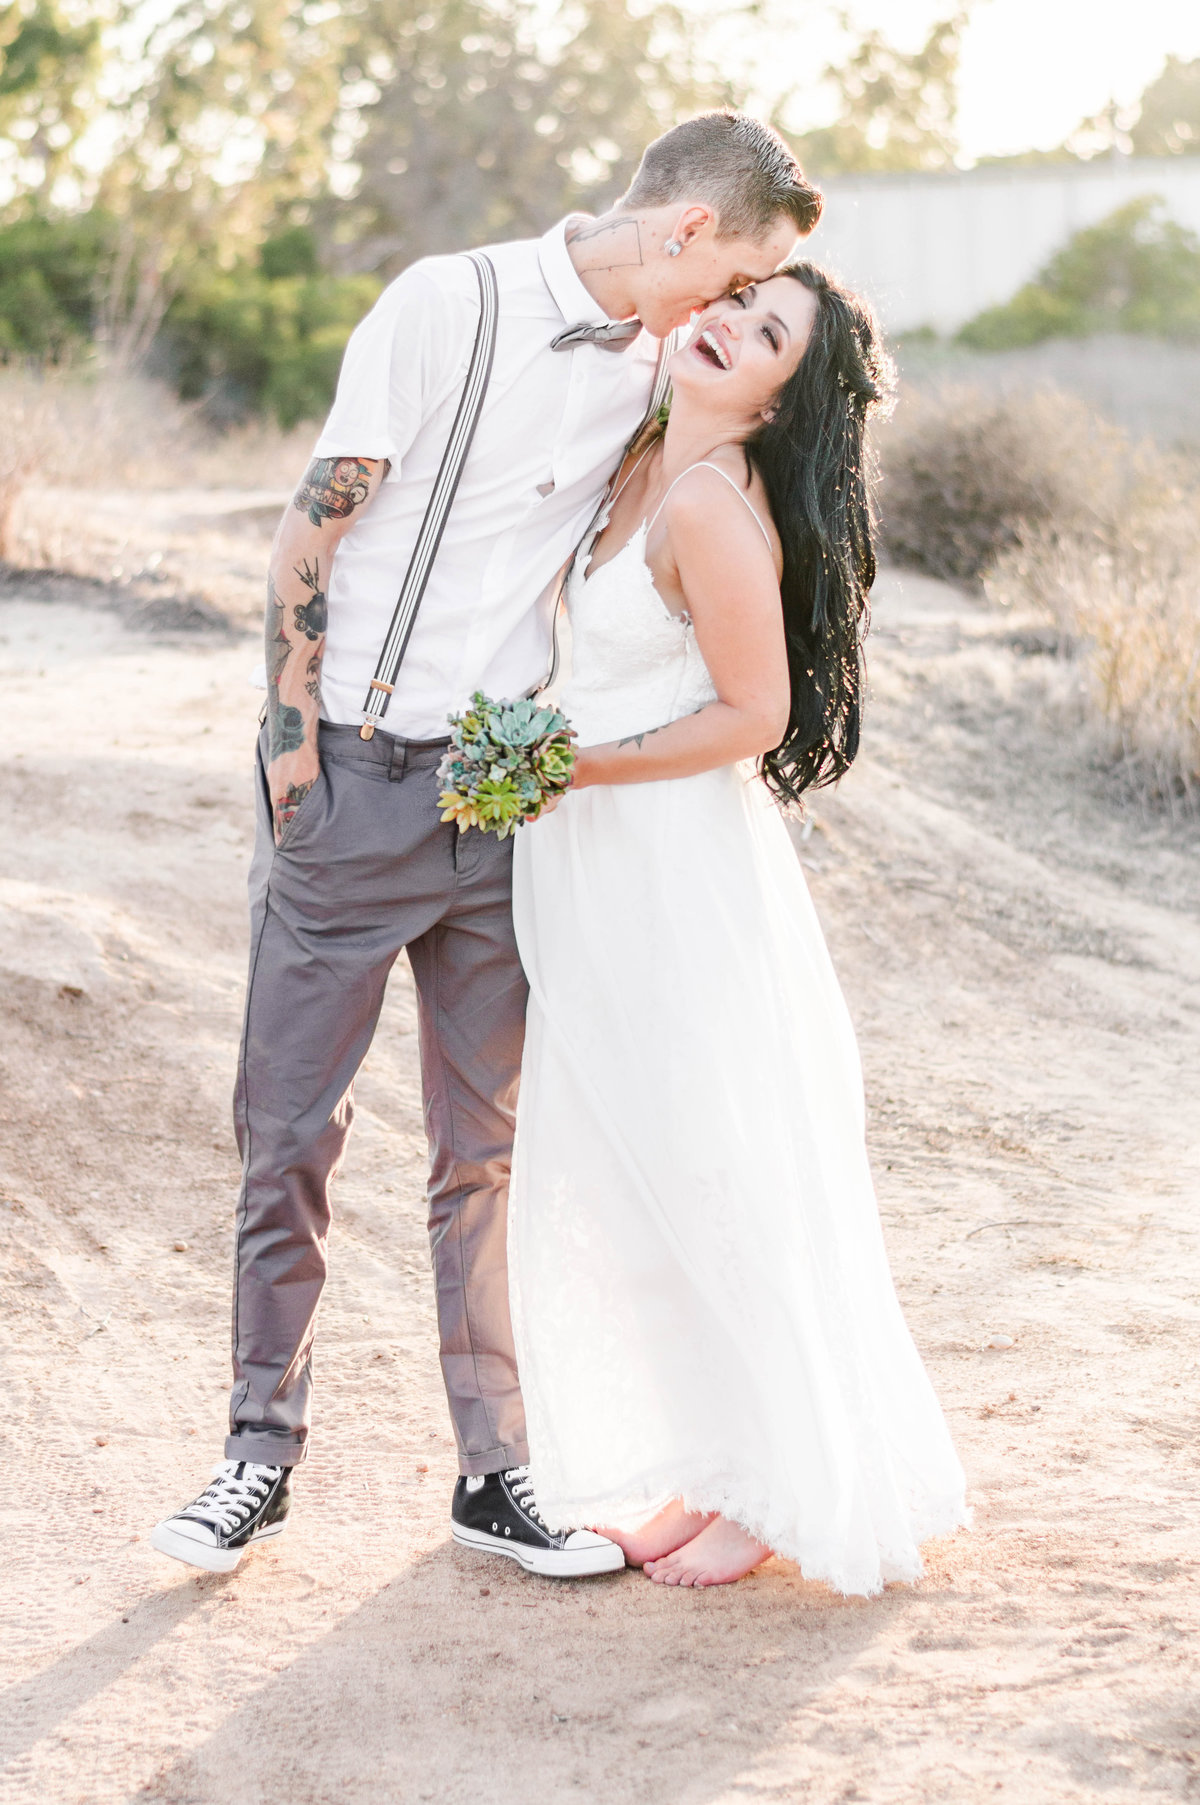 Boho wedding with succulent bouquet Orange County wedding photographer